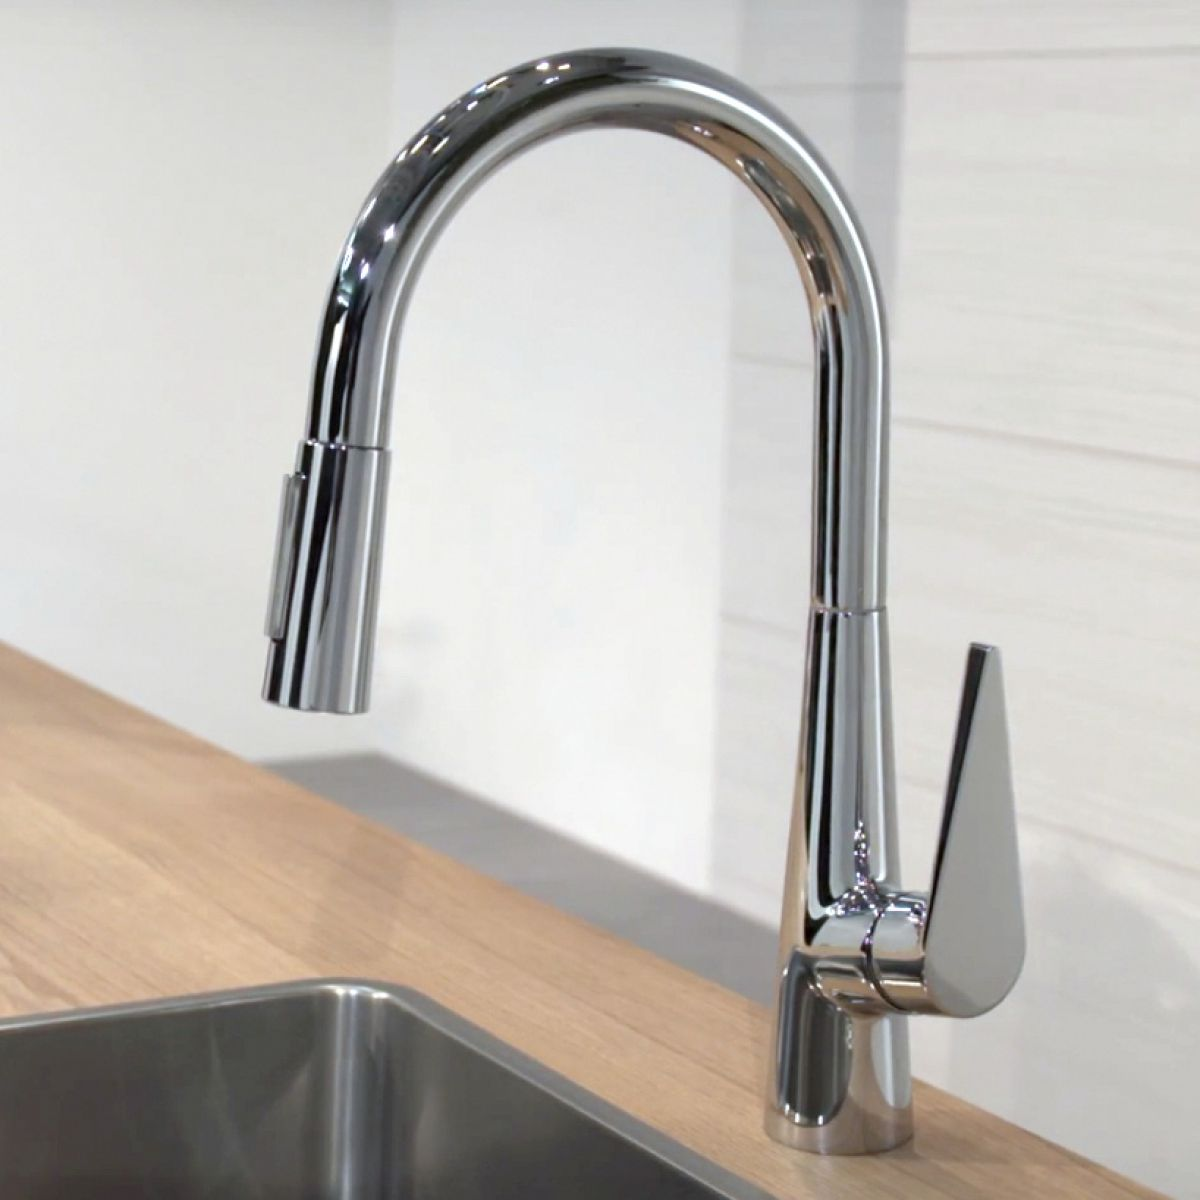 Outstanding Hansgrohe Talis S 200 Kitchen Mixer Tap With Pull Out Spray Download Free Architecture Designs Intelgarnamadebymaigaardcom